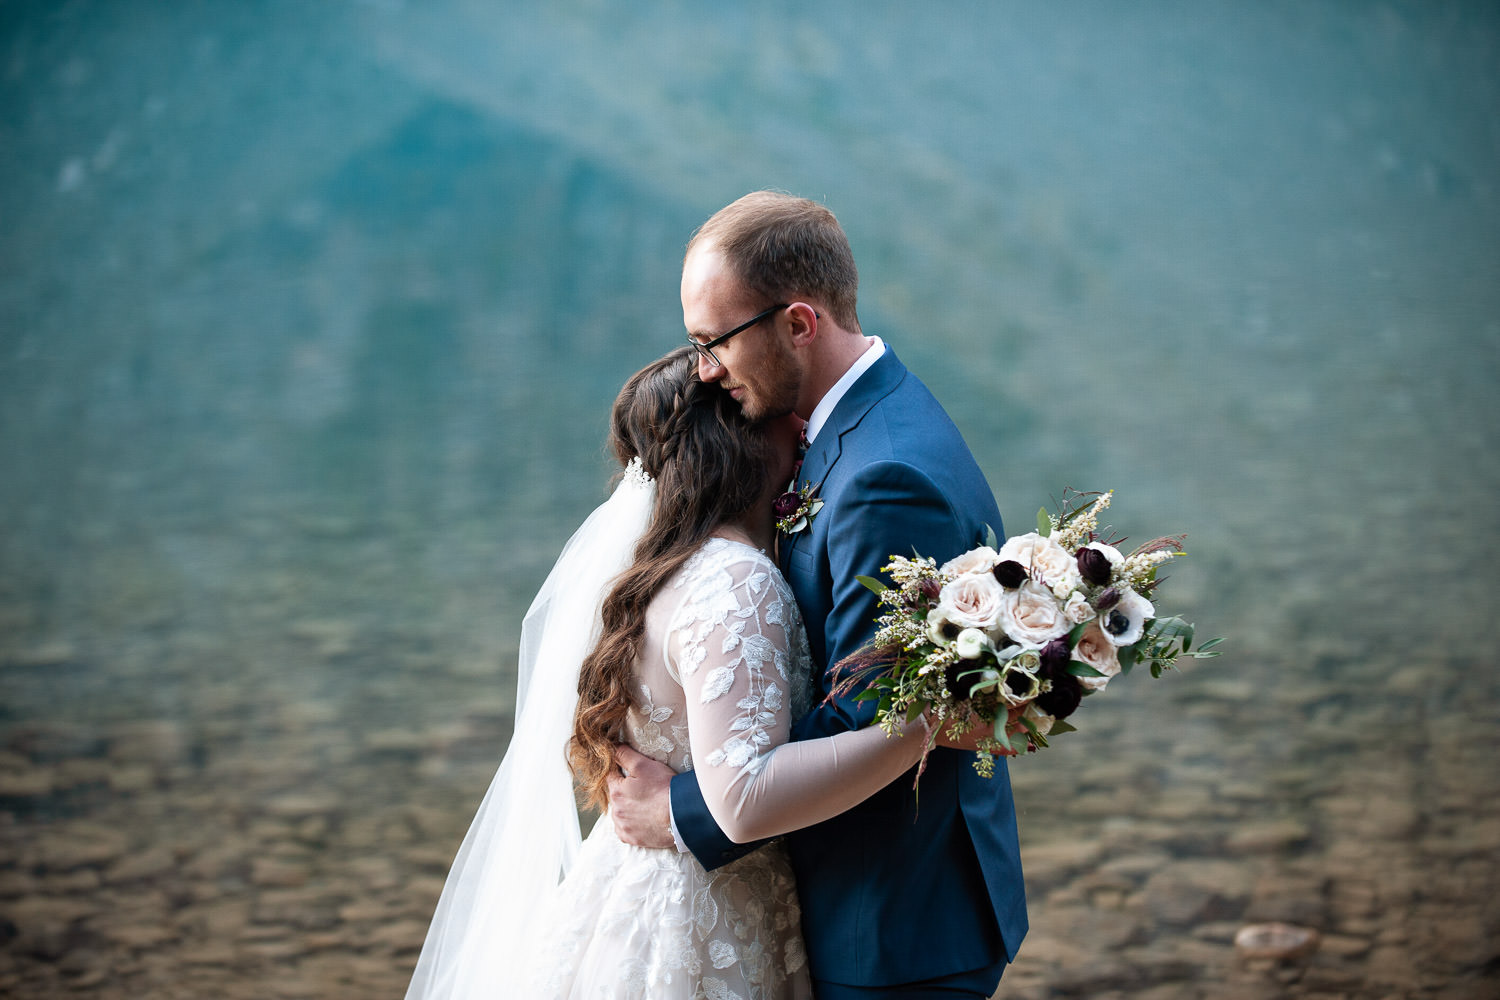 Bride and groom at their Moraine Lake elopement captured by Tara Whittaker Photography